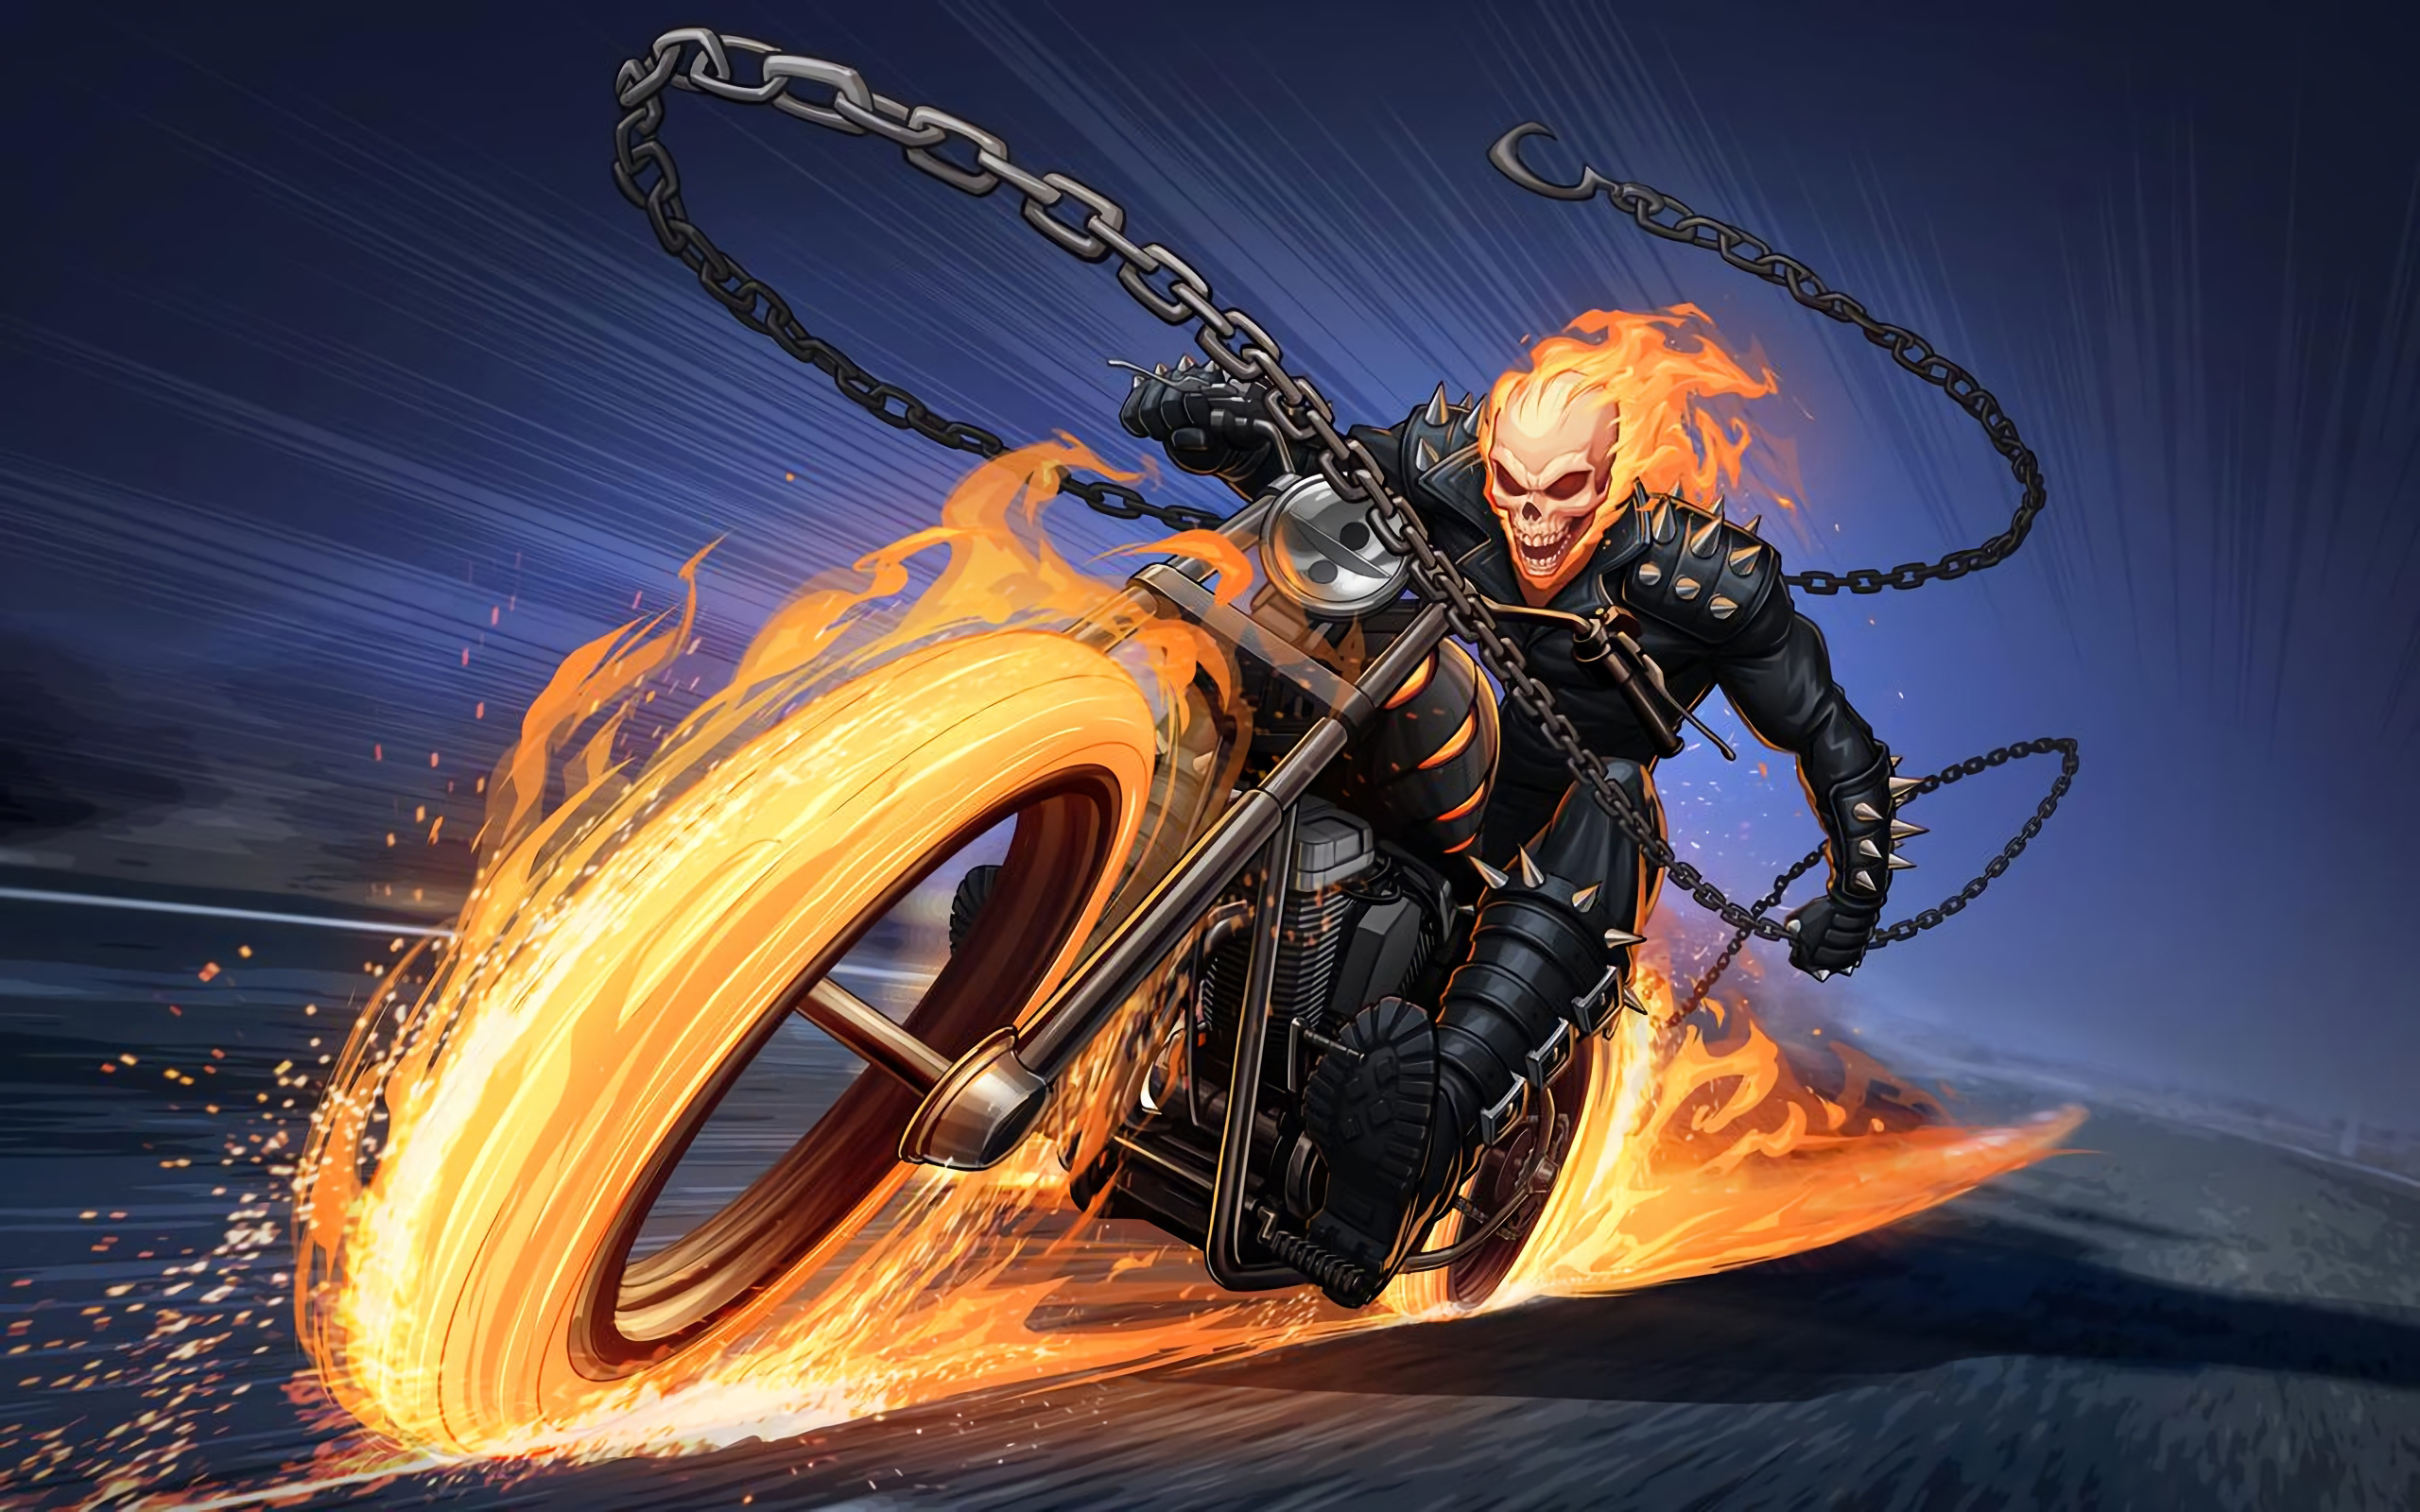 2560x1600 Ghost Rider Superhero 2560x1600 Resolution HD 4k Wallpapers,  Images, Backgrounds, Photos and Pictures